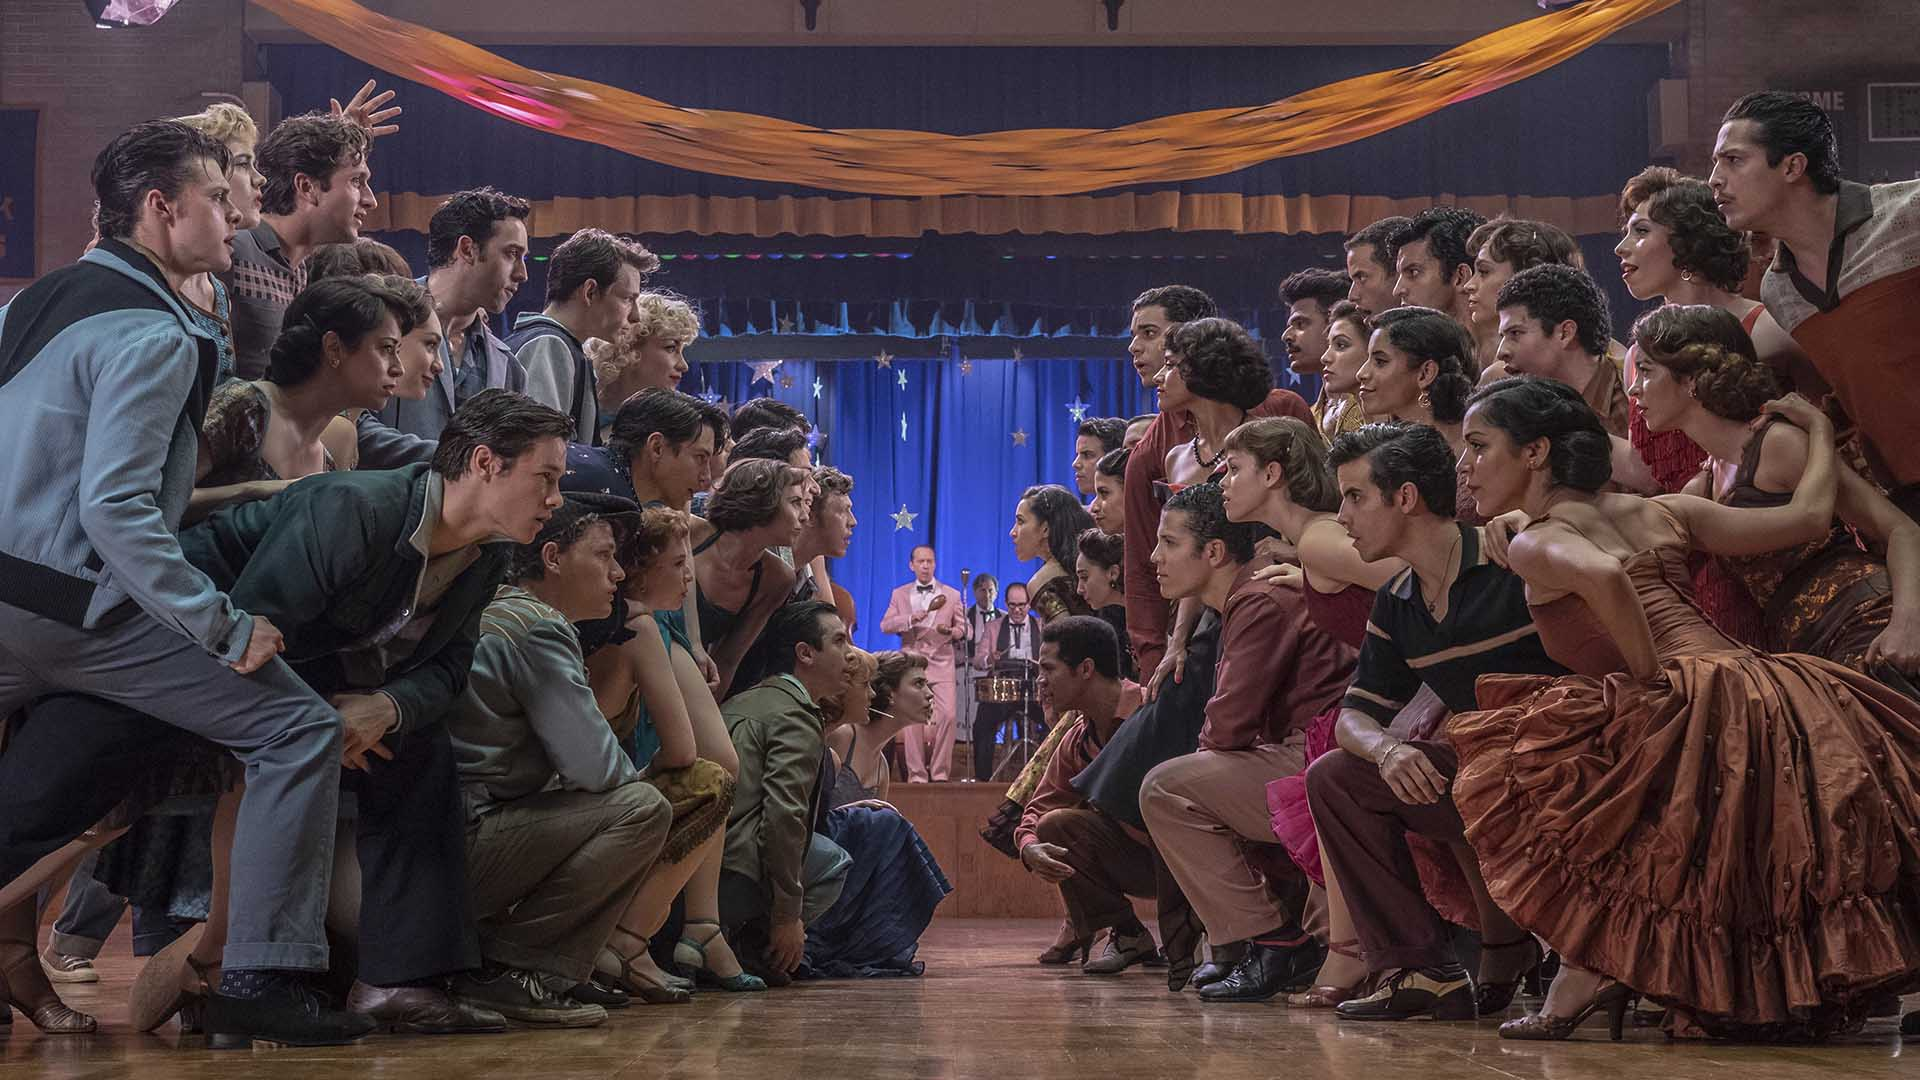 Steven Spielberg's Big-Screen 'West Side Story' Remake Has Just Dropped Its Full Trailer